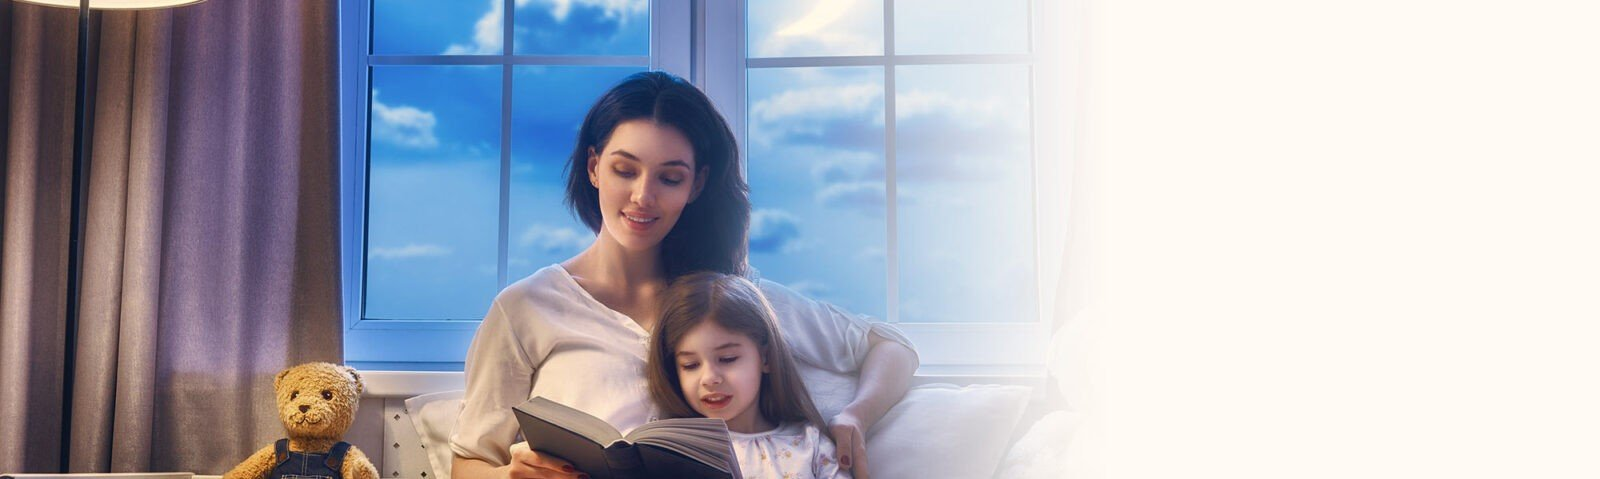 Mother reading story to child